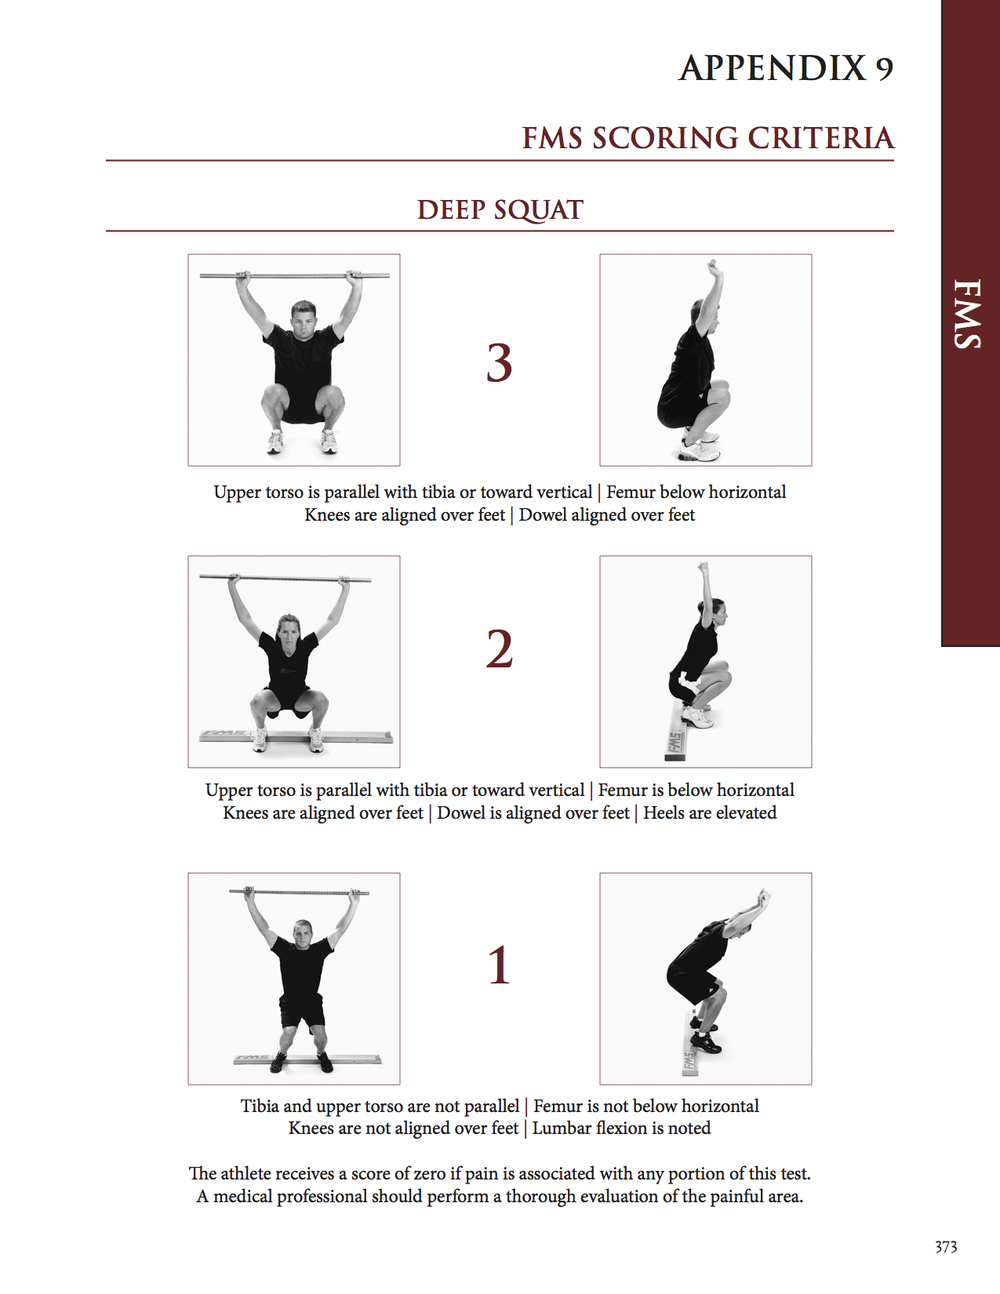 Notice the difference between a score of 1 and a score of 3 on this FMS movement screening. Lack of upper-back and shoulder mobility greatly affects proper positioning in the overhead squat, and many other movements.